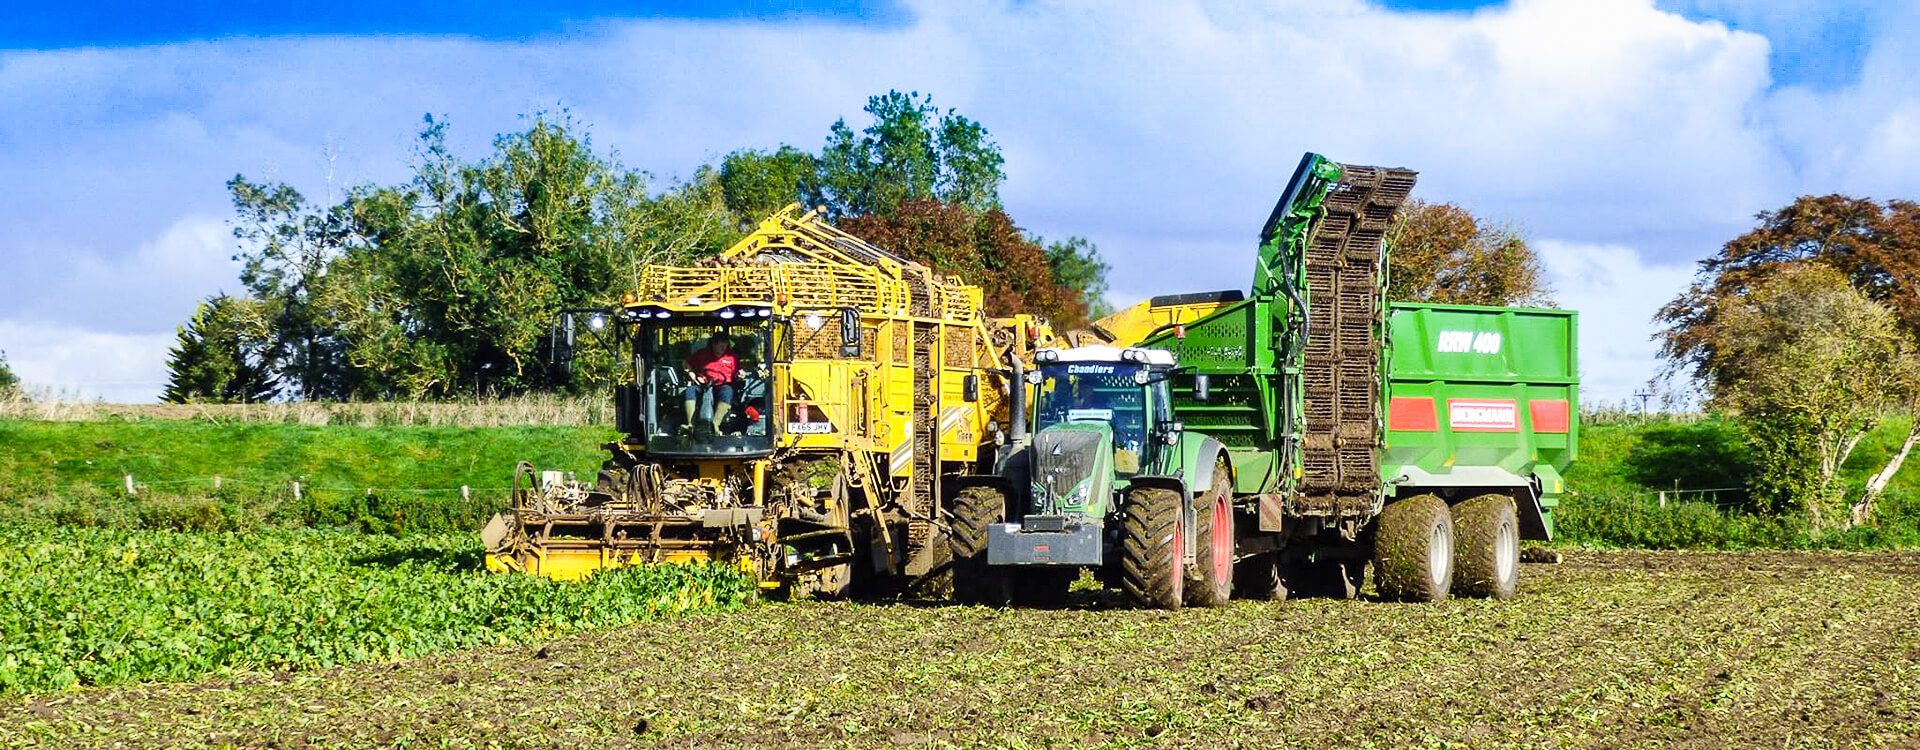 Sugar beet chaser trailer with ropa harvester